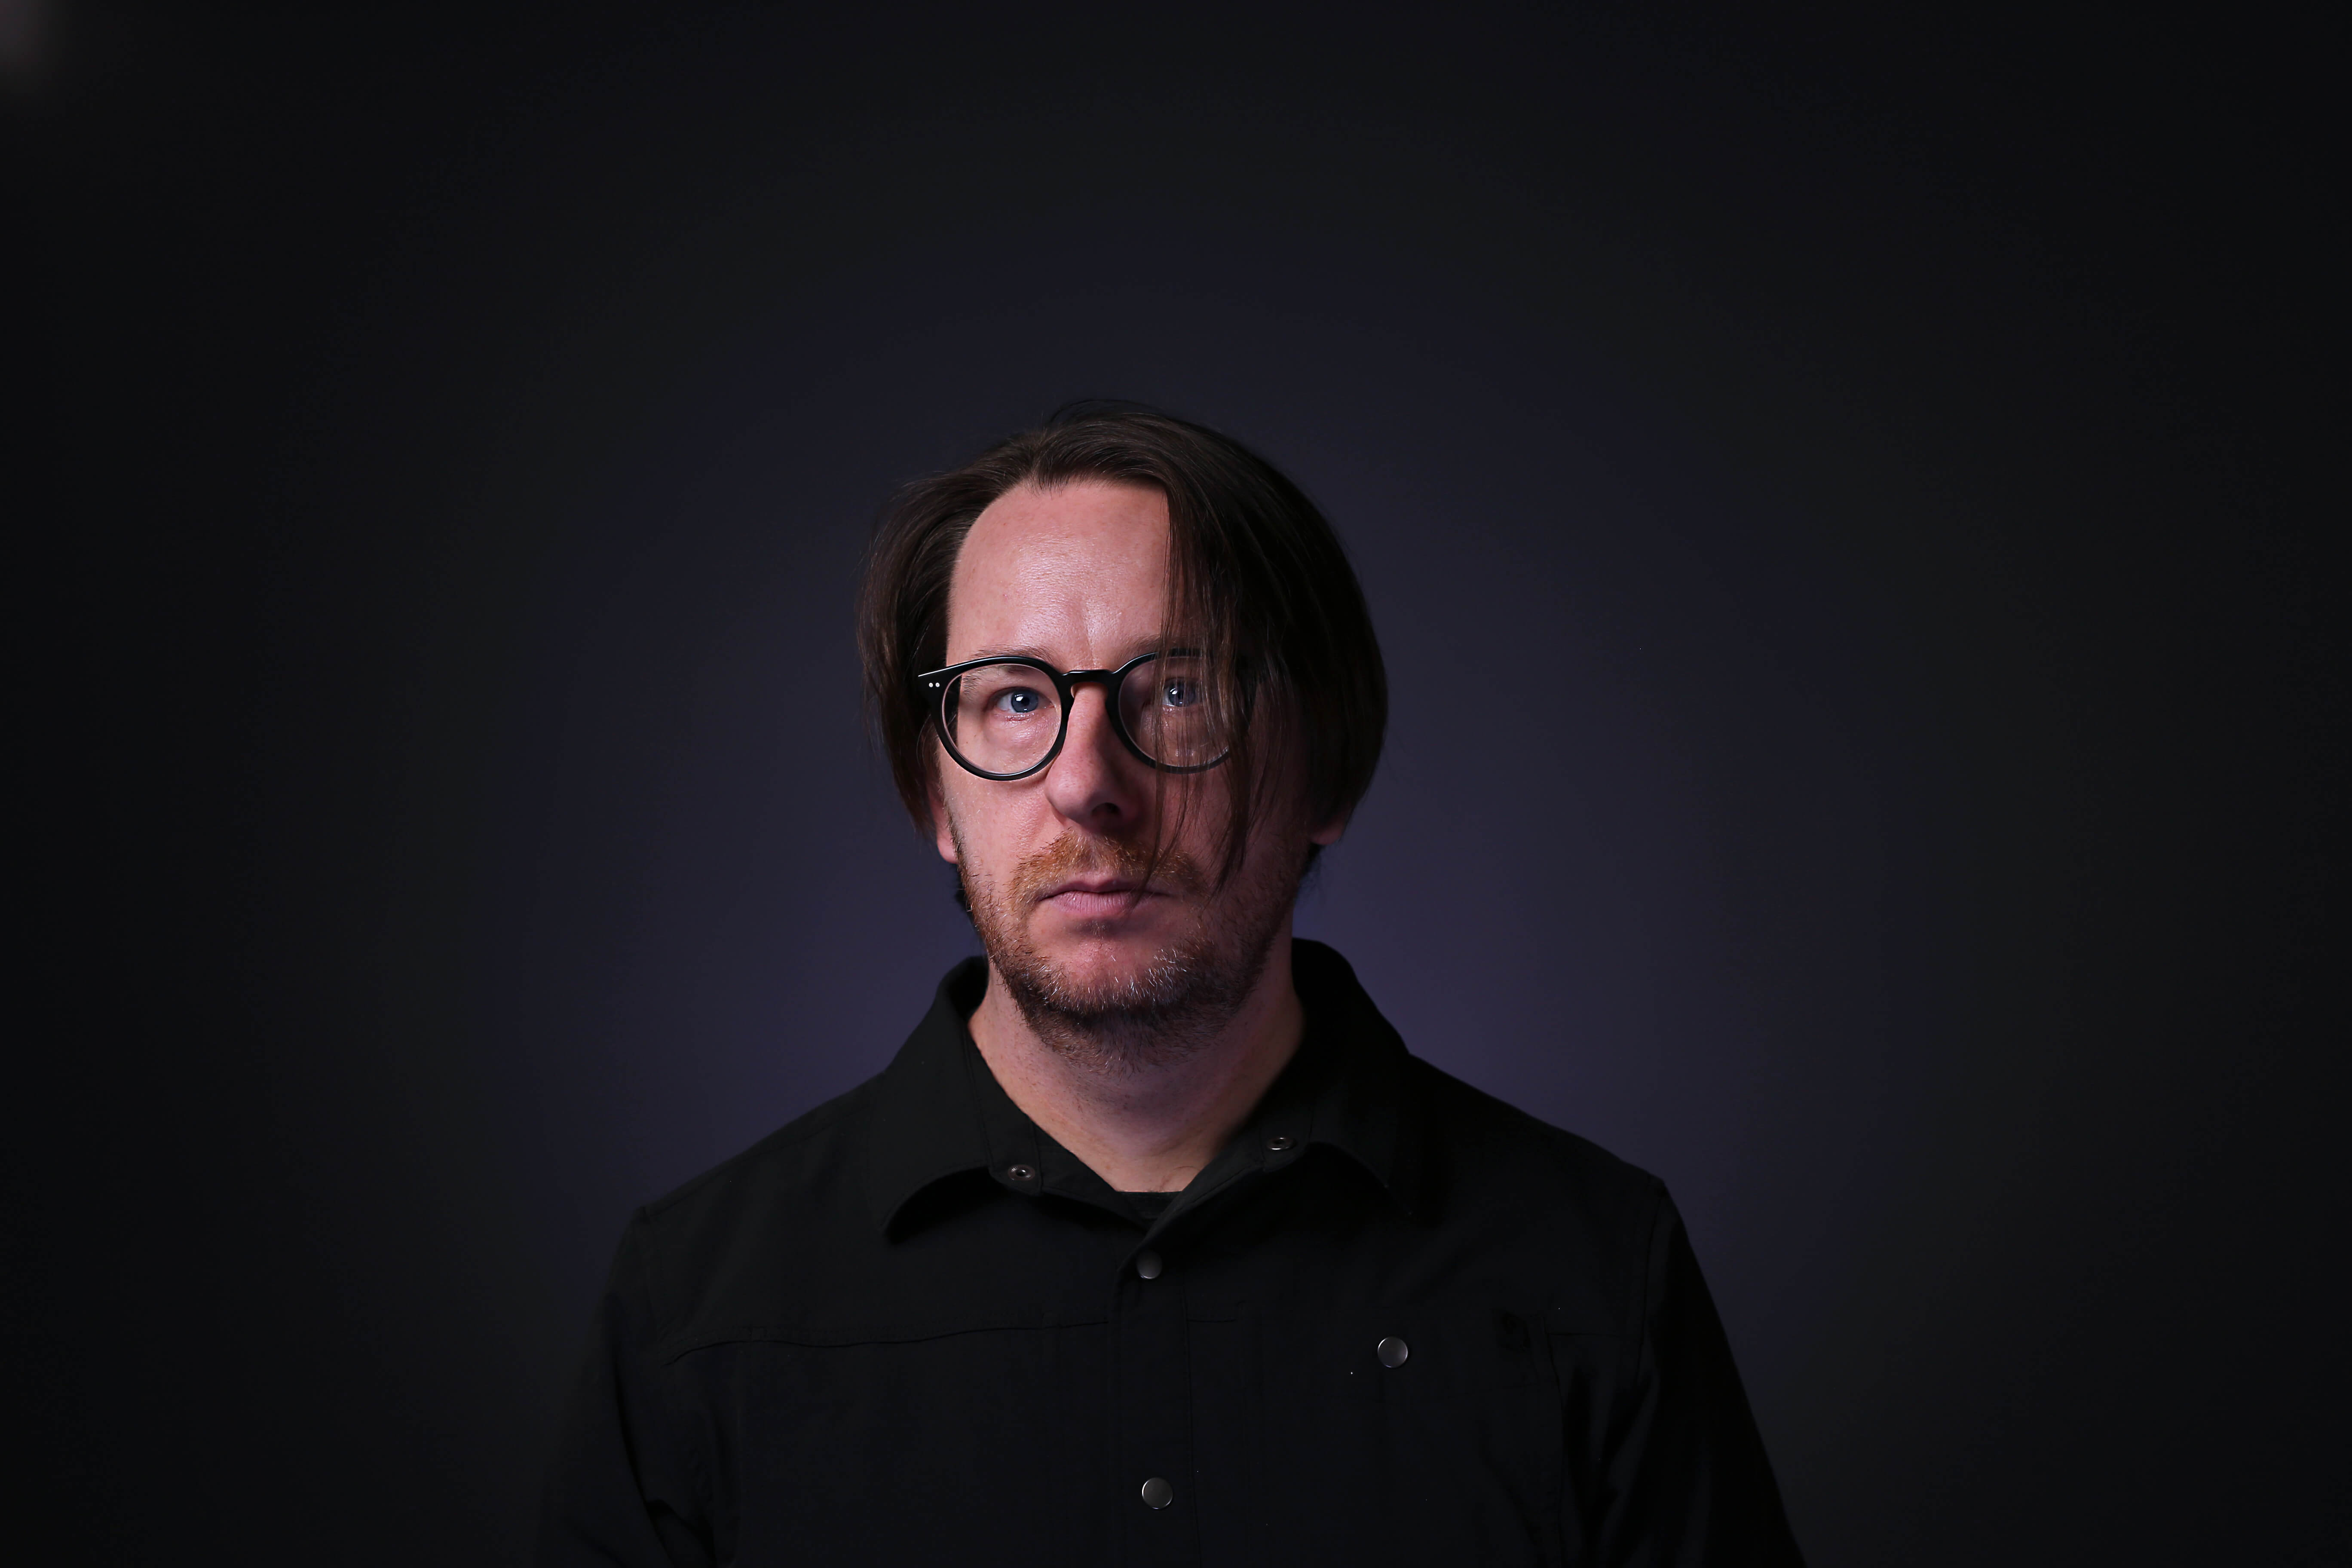 A composer standing in front of a black background with glasses.